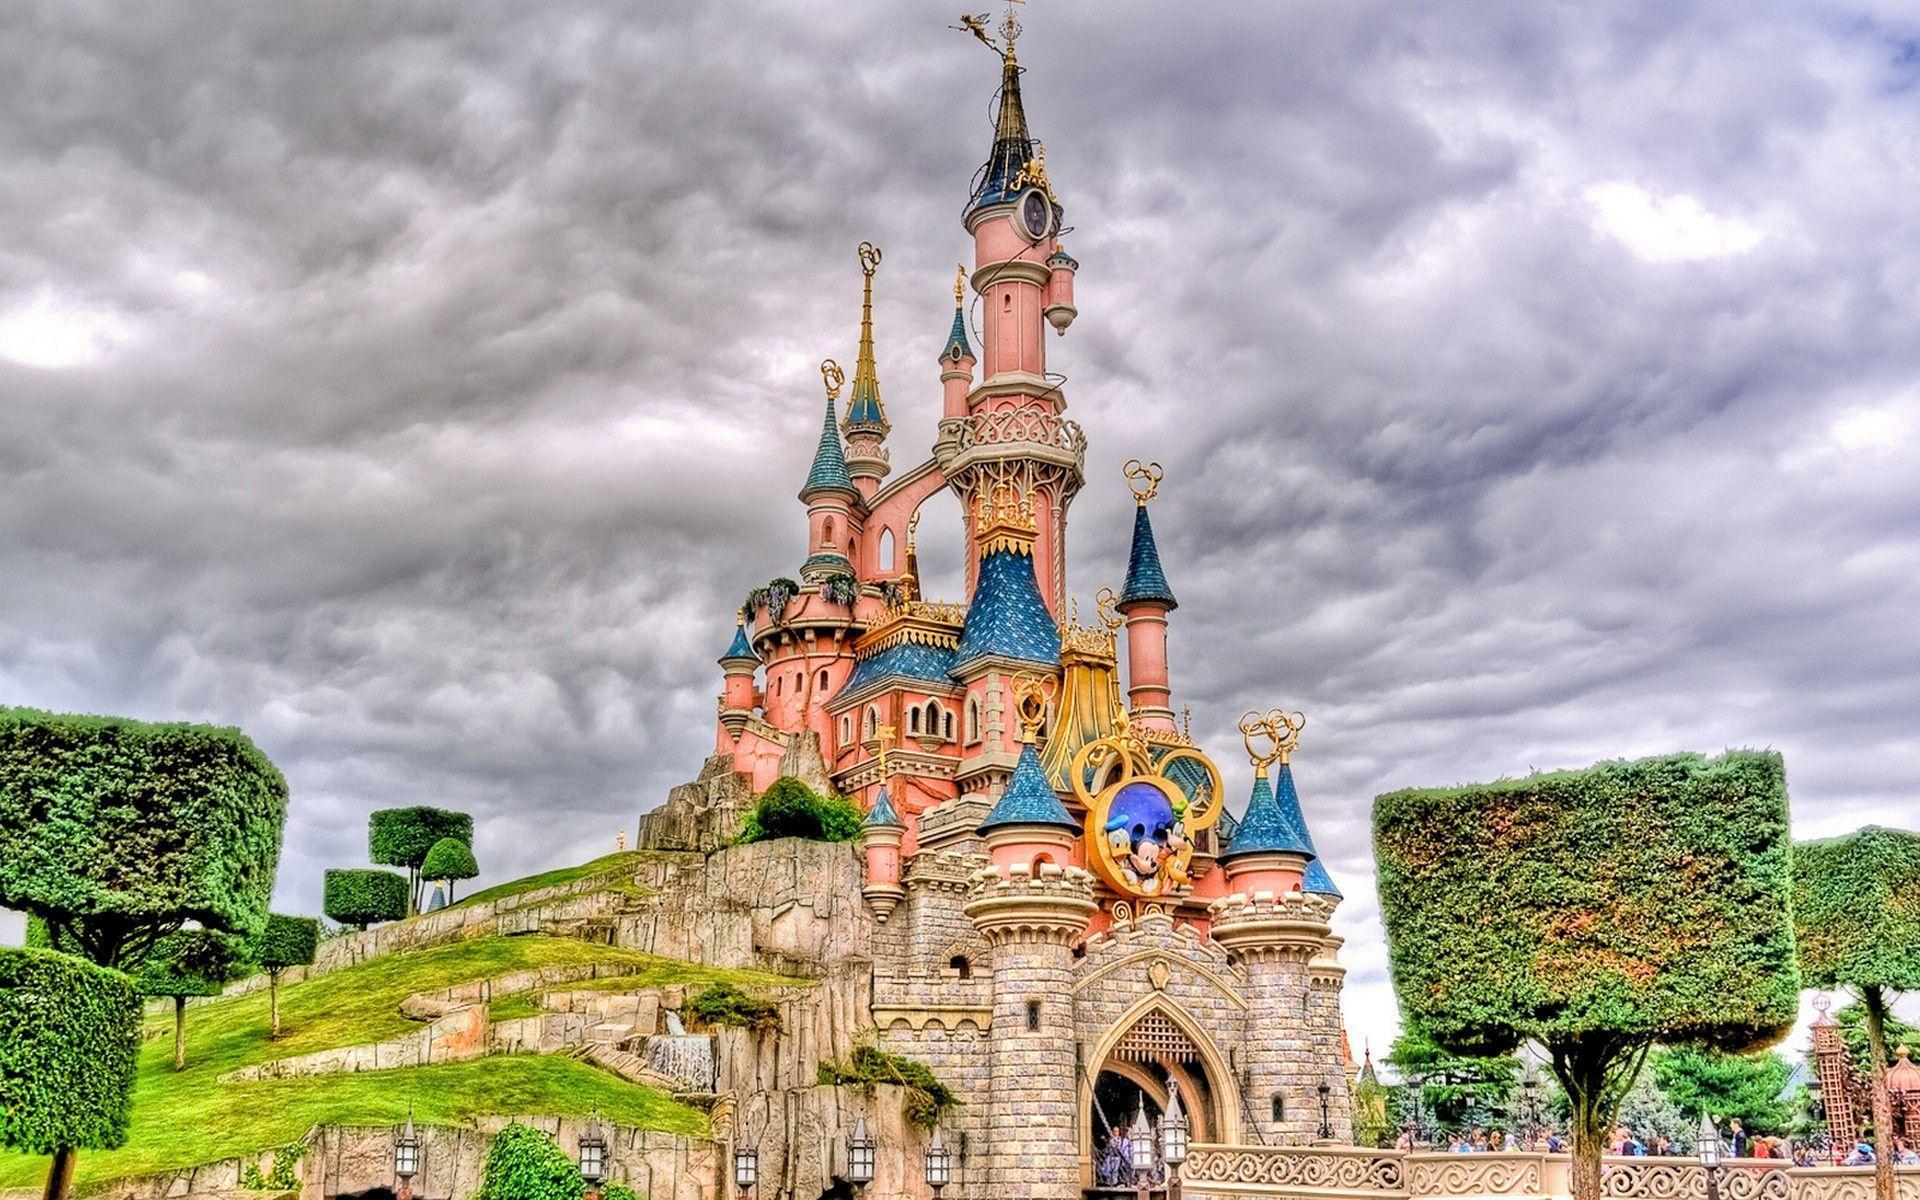 Sleeping Beauty Castle of Disneyland Park in Anaheim United States